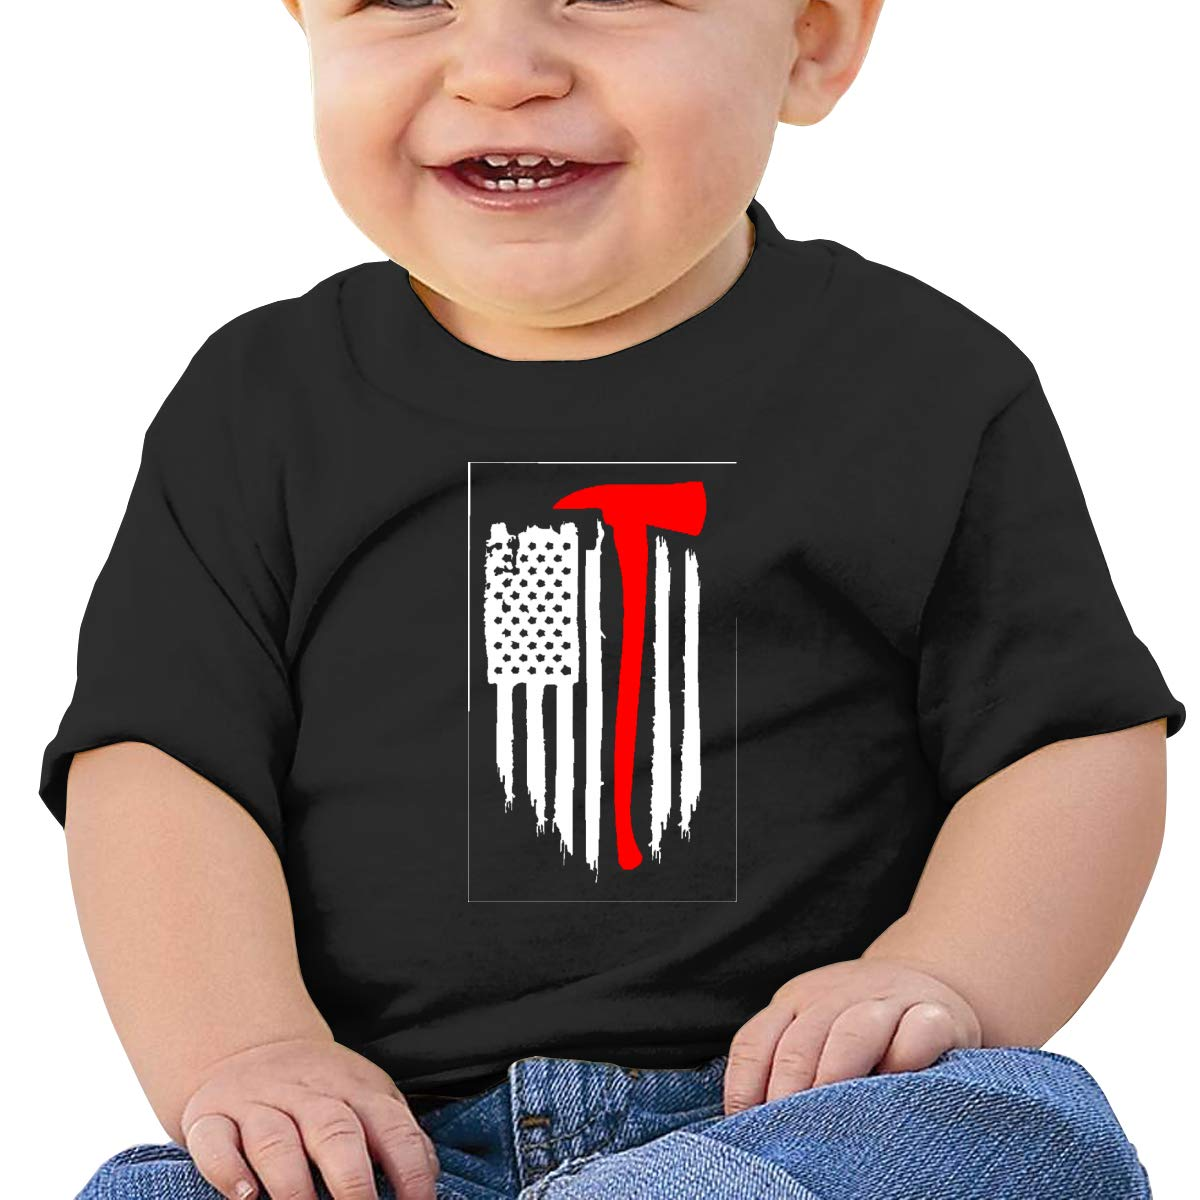 JVNSS American Flag Firefighter Baby T-Shirt Baby Boy Girl Cotton T Shirts Funny Tee Shirts for 6M-2T Baby